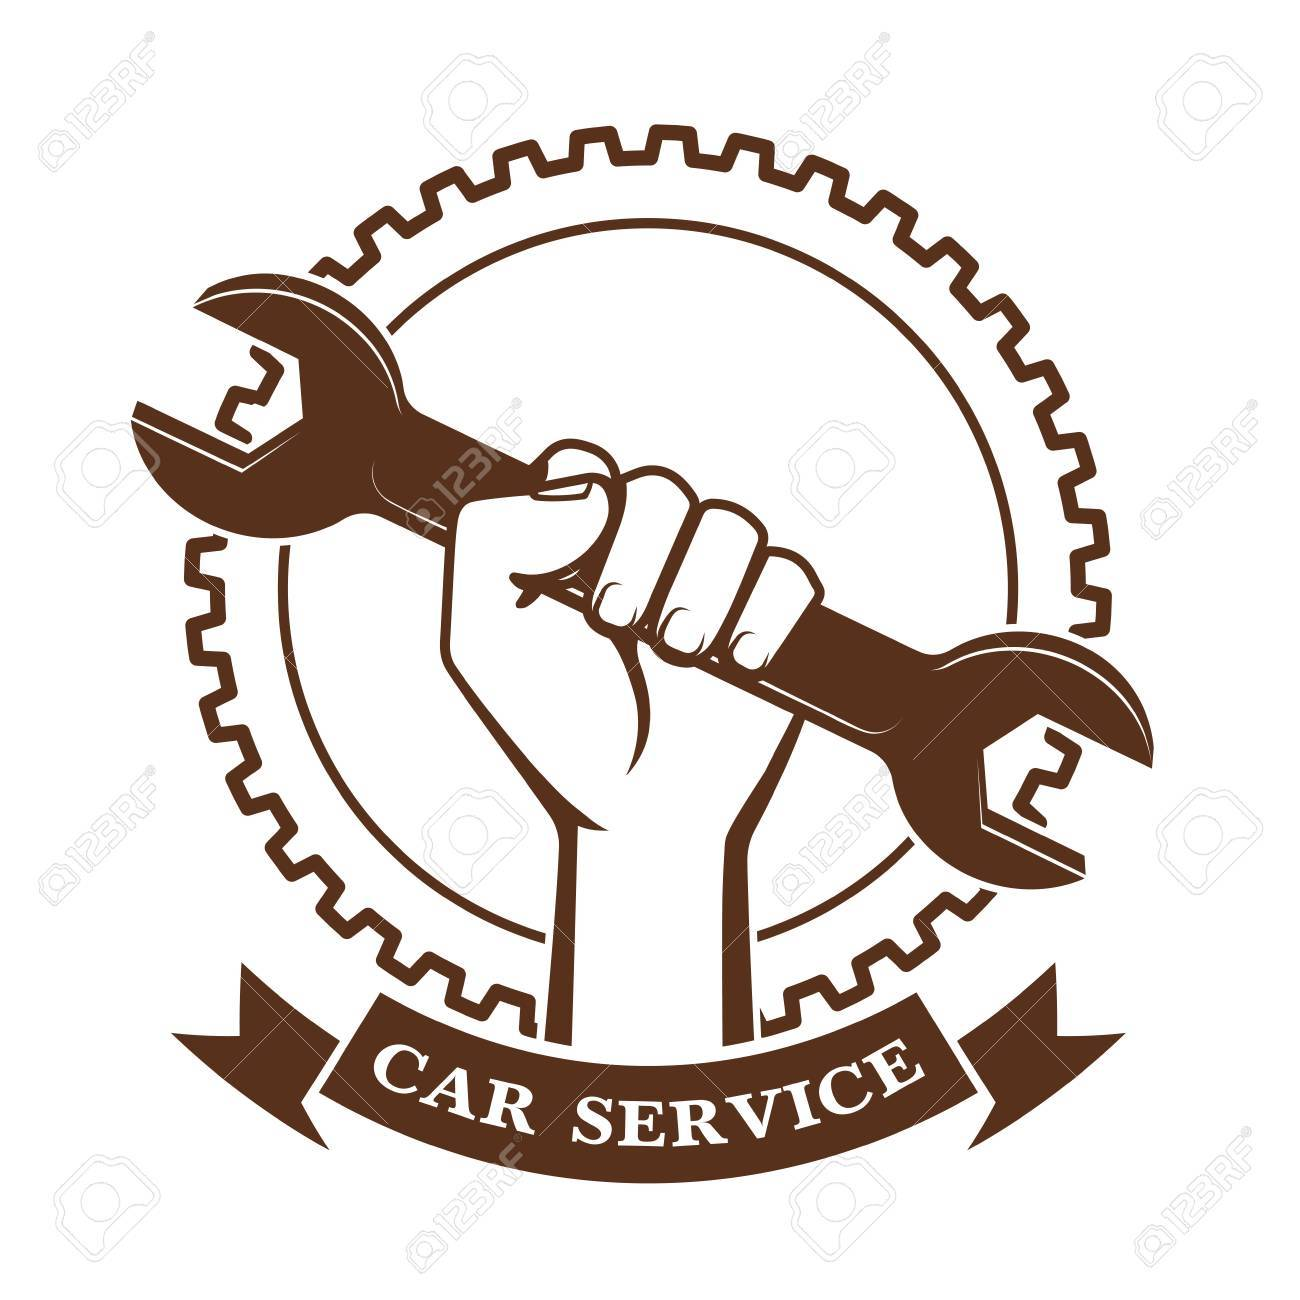 Wrench in a hand a symbol of car service royalty free cliparts wrench in a hand a symbol of car service stock vector 64271259 biocorpaavc Choice Image